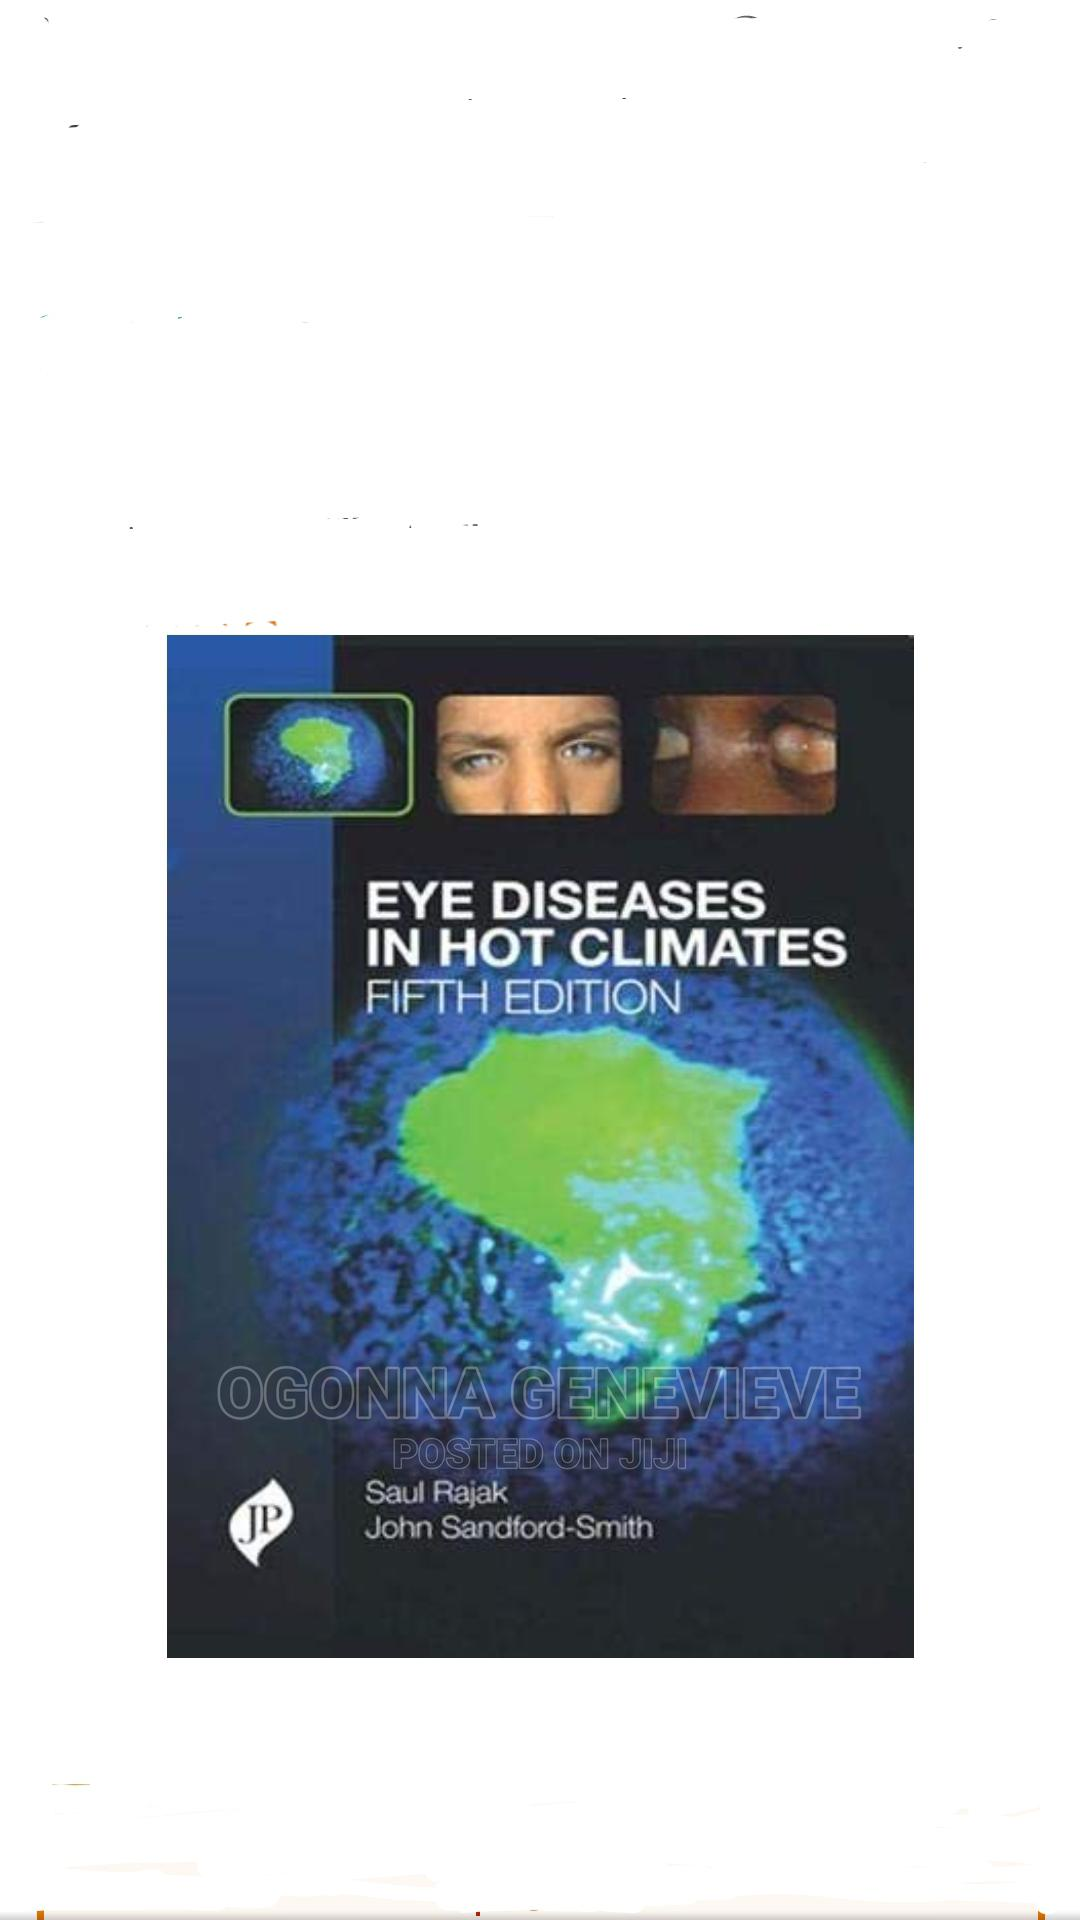 Eye Diseases in Hot Climates 5th Edition